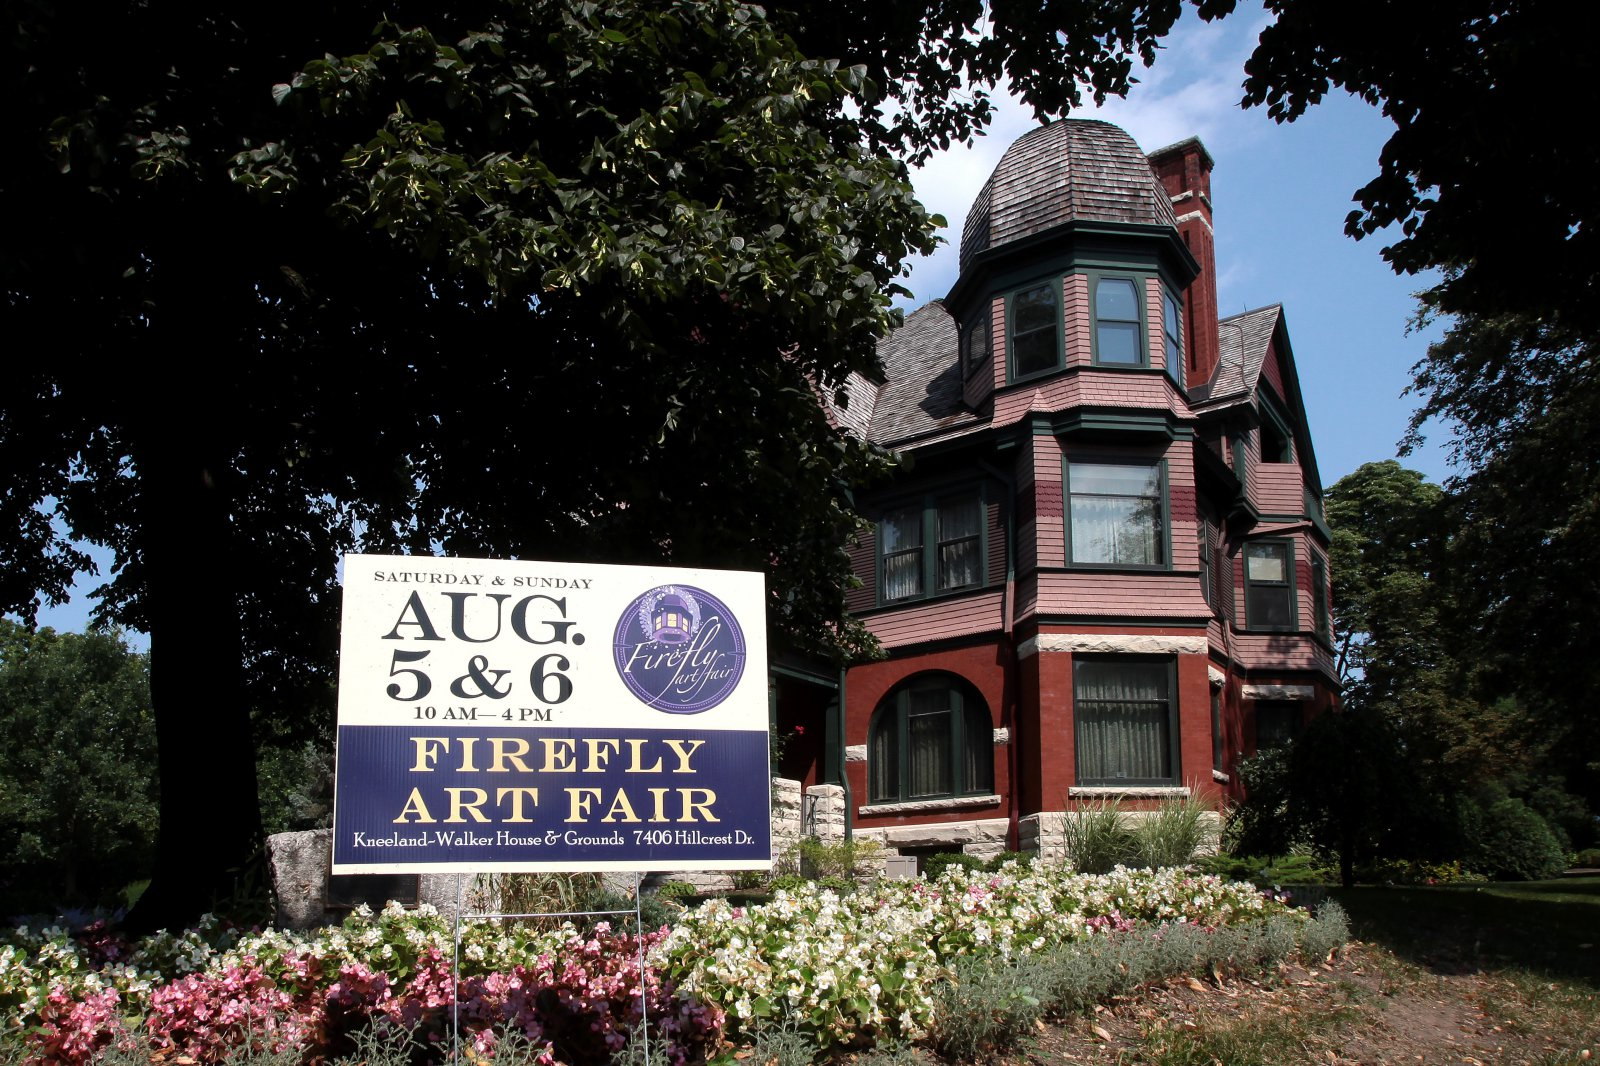 The Wauwatosa Historical Society\'s 31st Annual Firefly Art Fair held at the Kneeland-Walker House and gardens on August 5 & 6, 2017